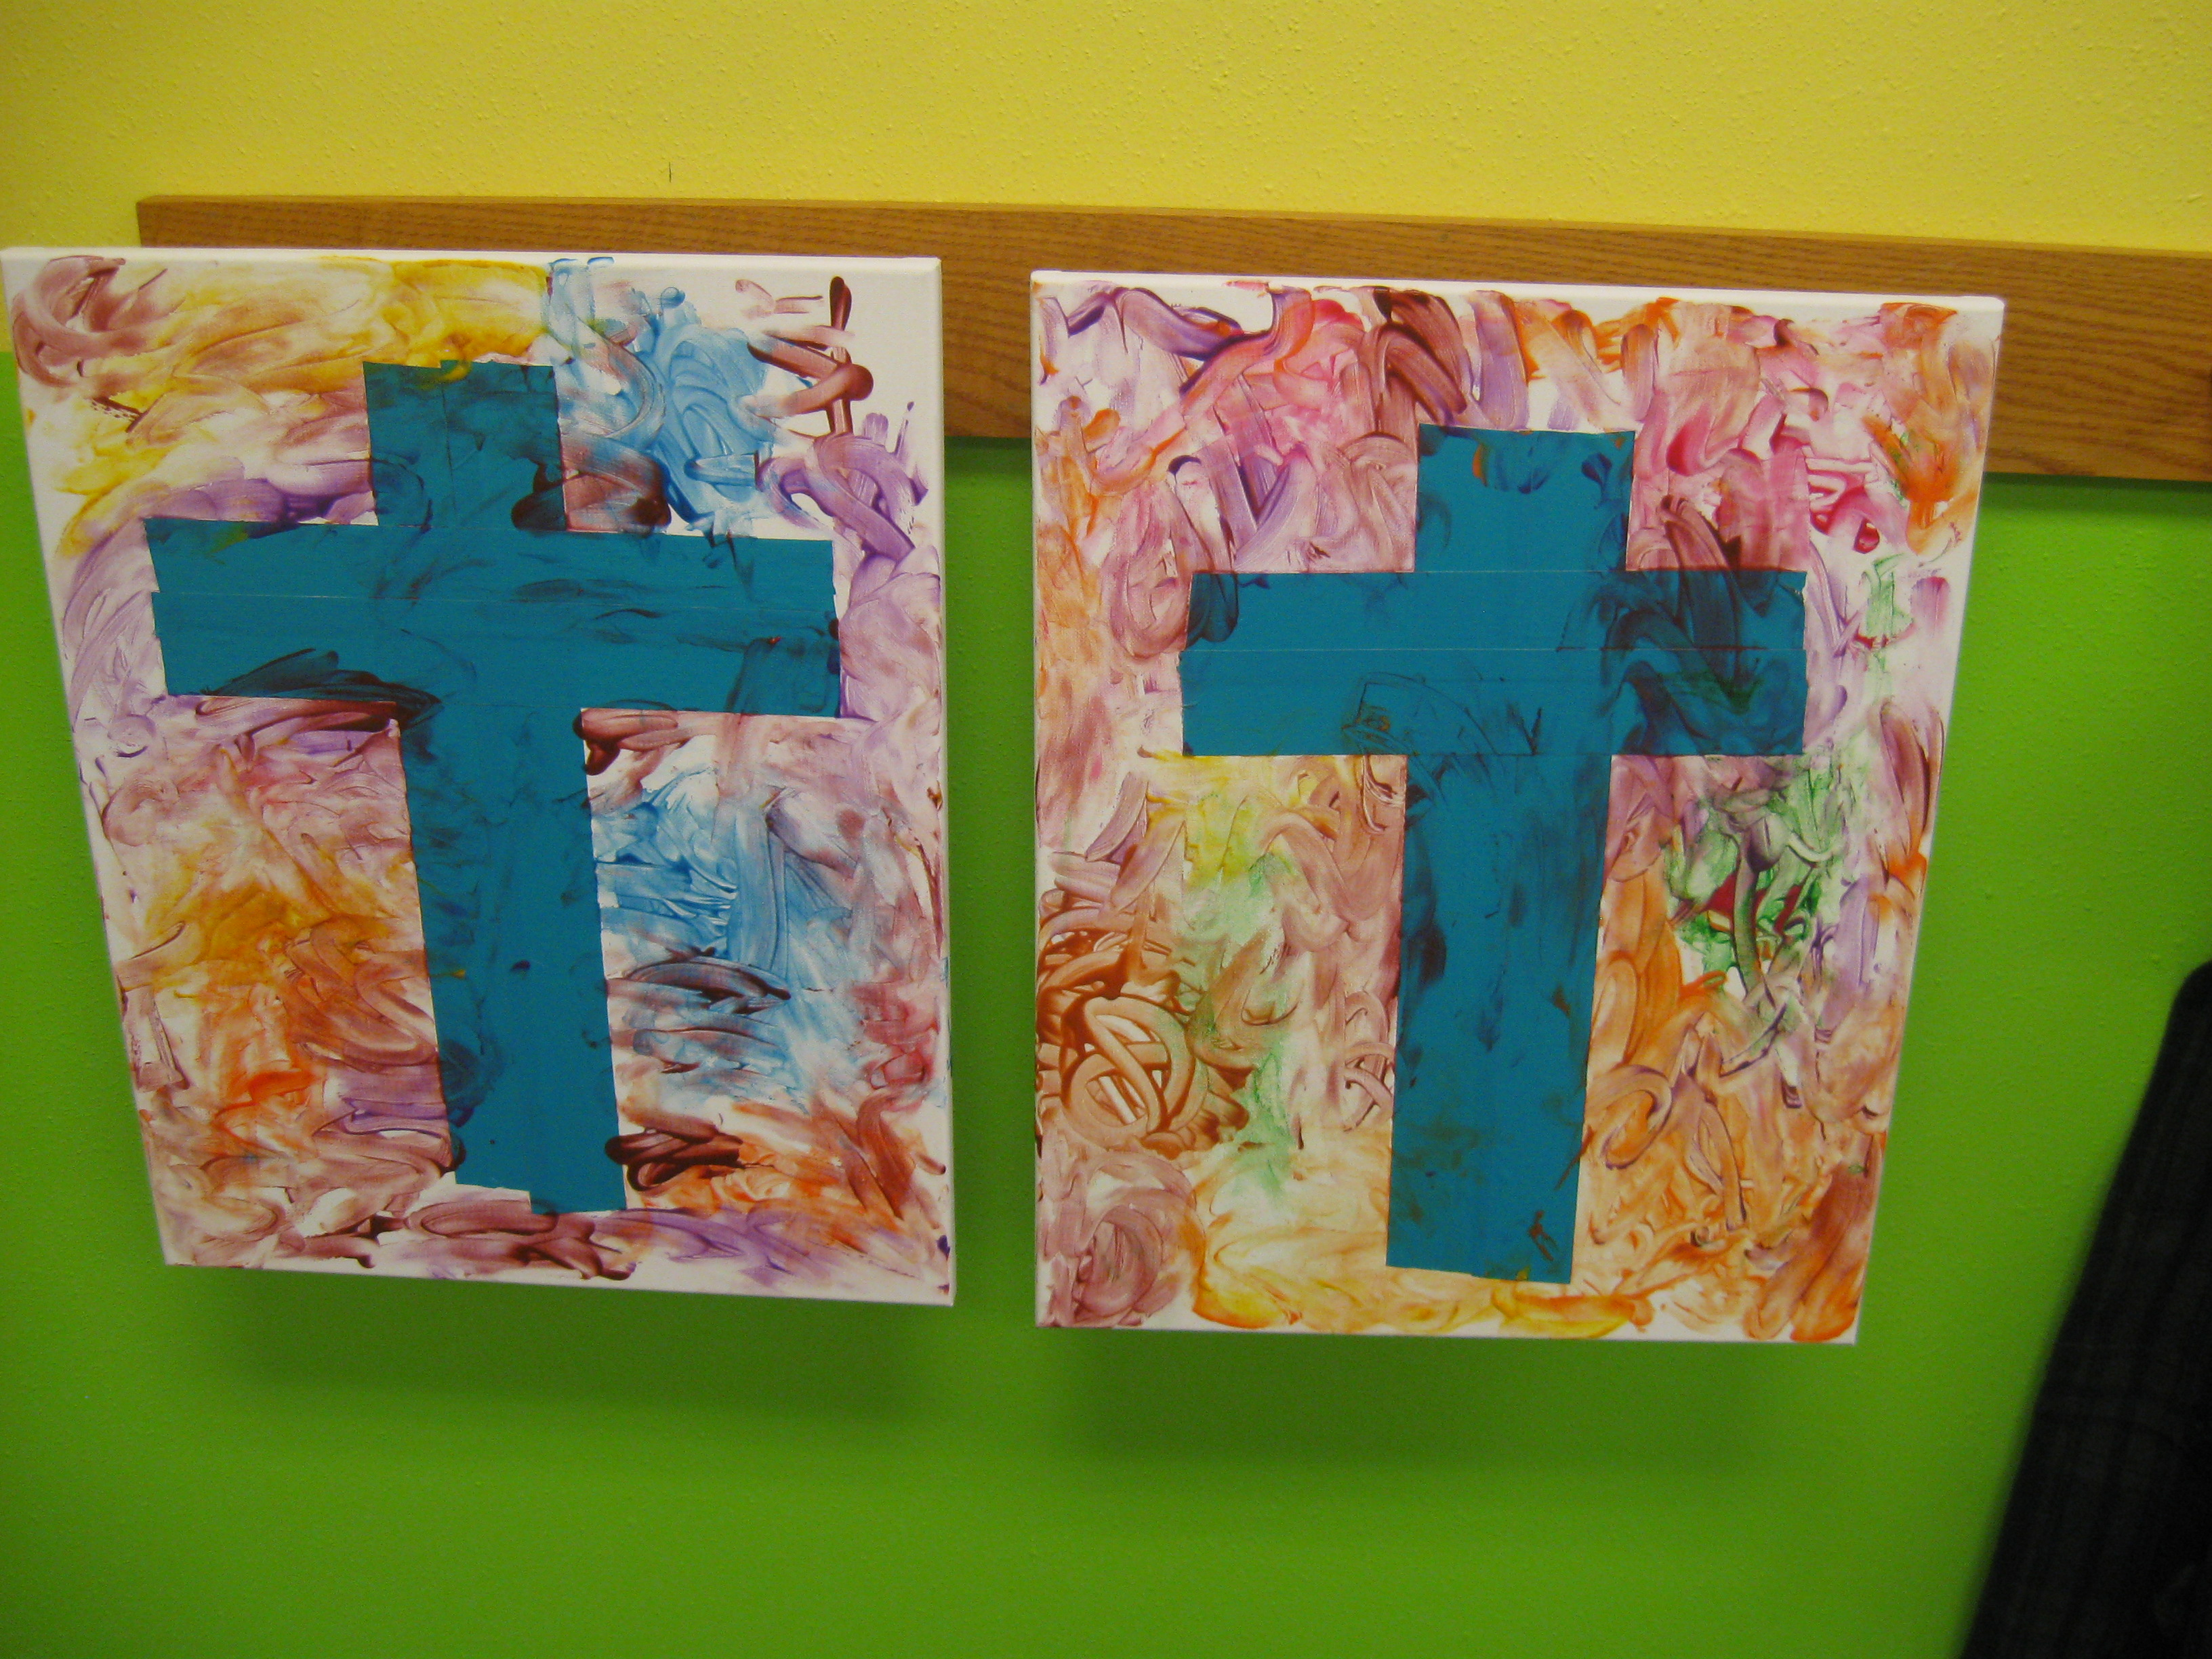 2 fingerpaint crosses